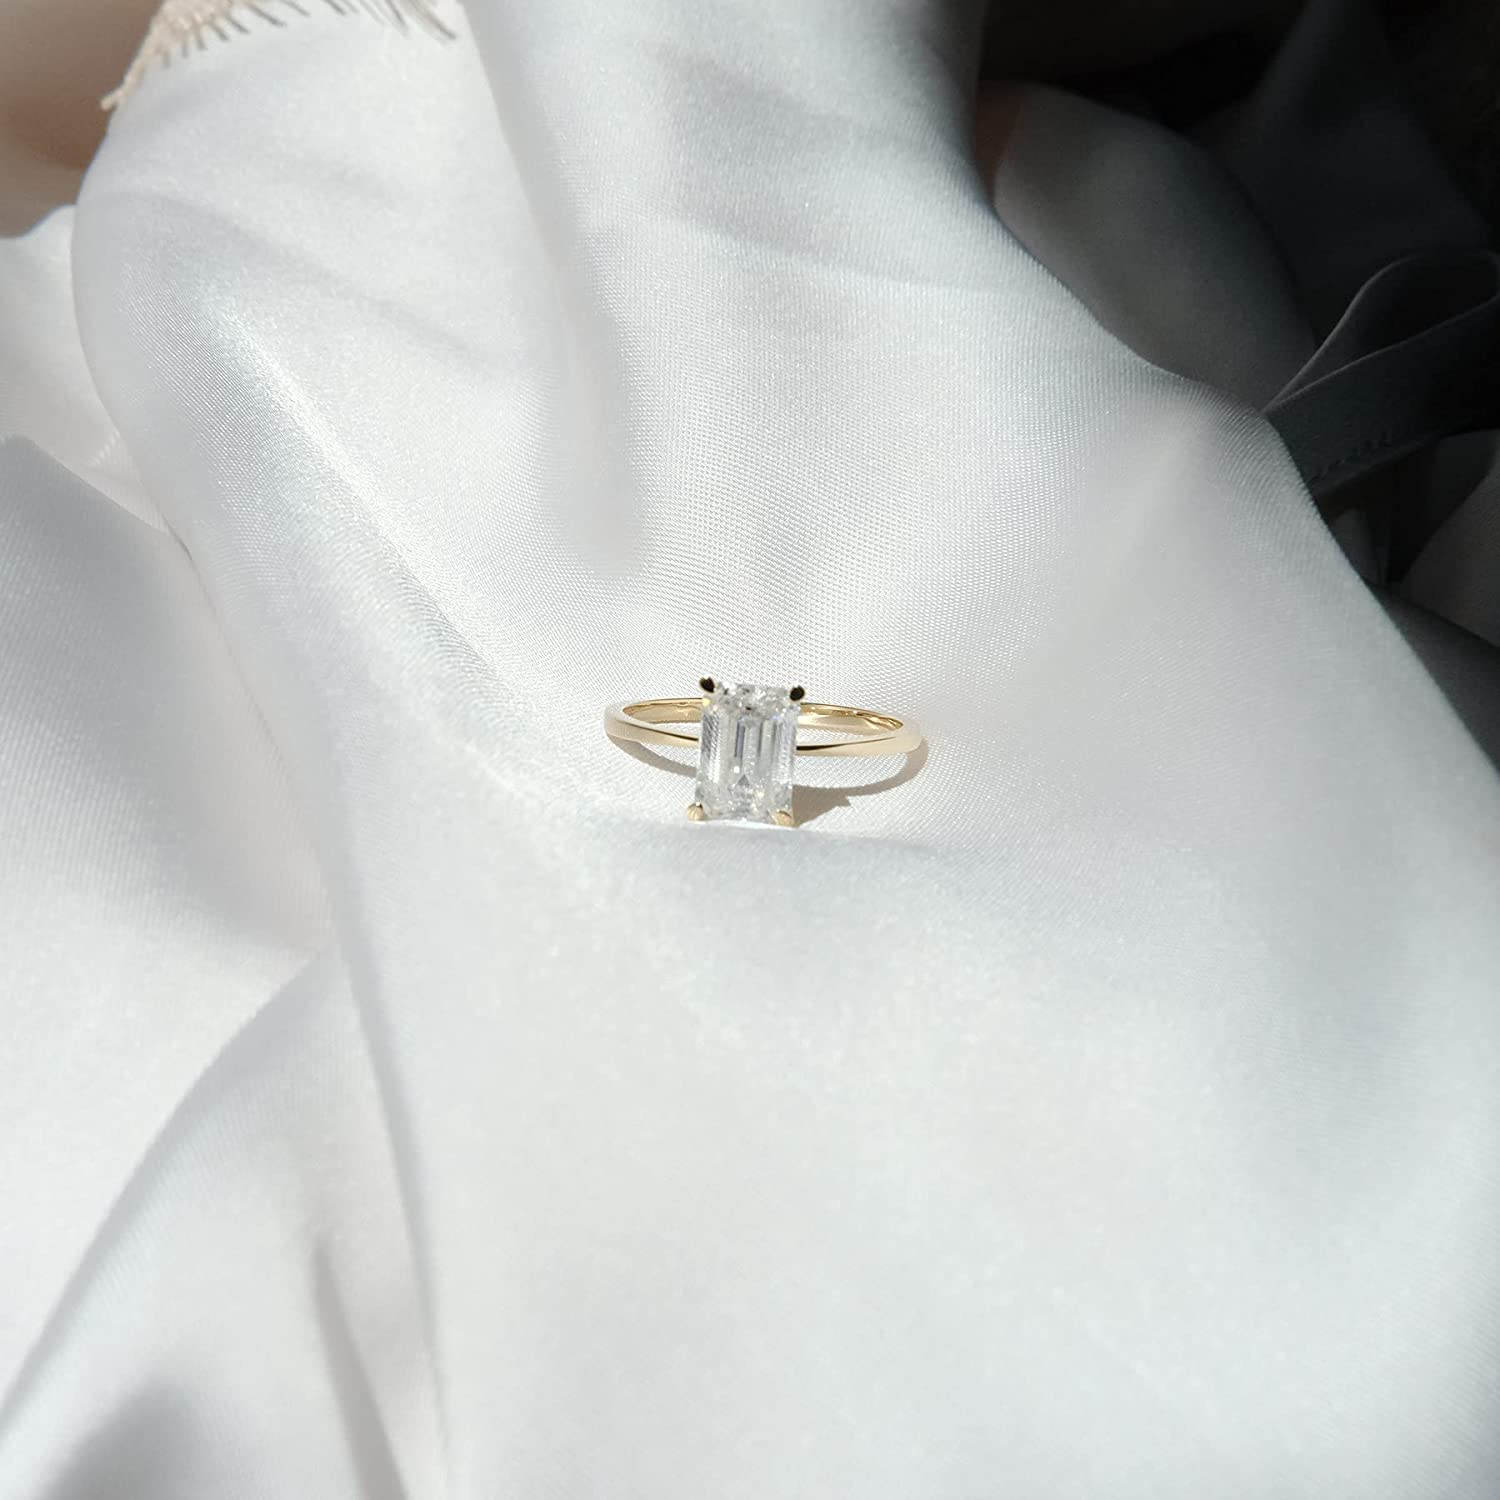 2 Carat Emerald Cut Moissanite Engagement Ring Classic Engagement Ring Solid Gold Plain Ring Band 14K Yellow Gold Bridal Ring Stackable Wedding Ring